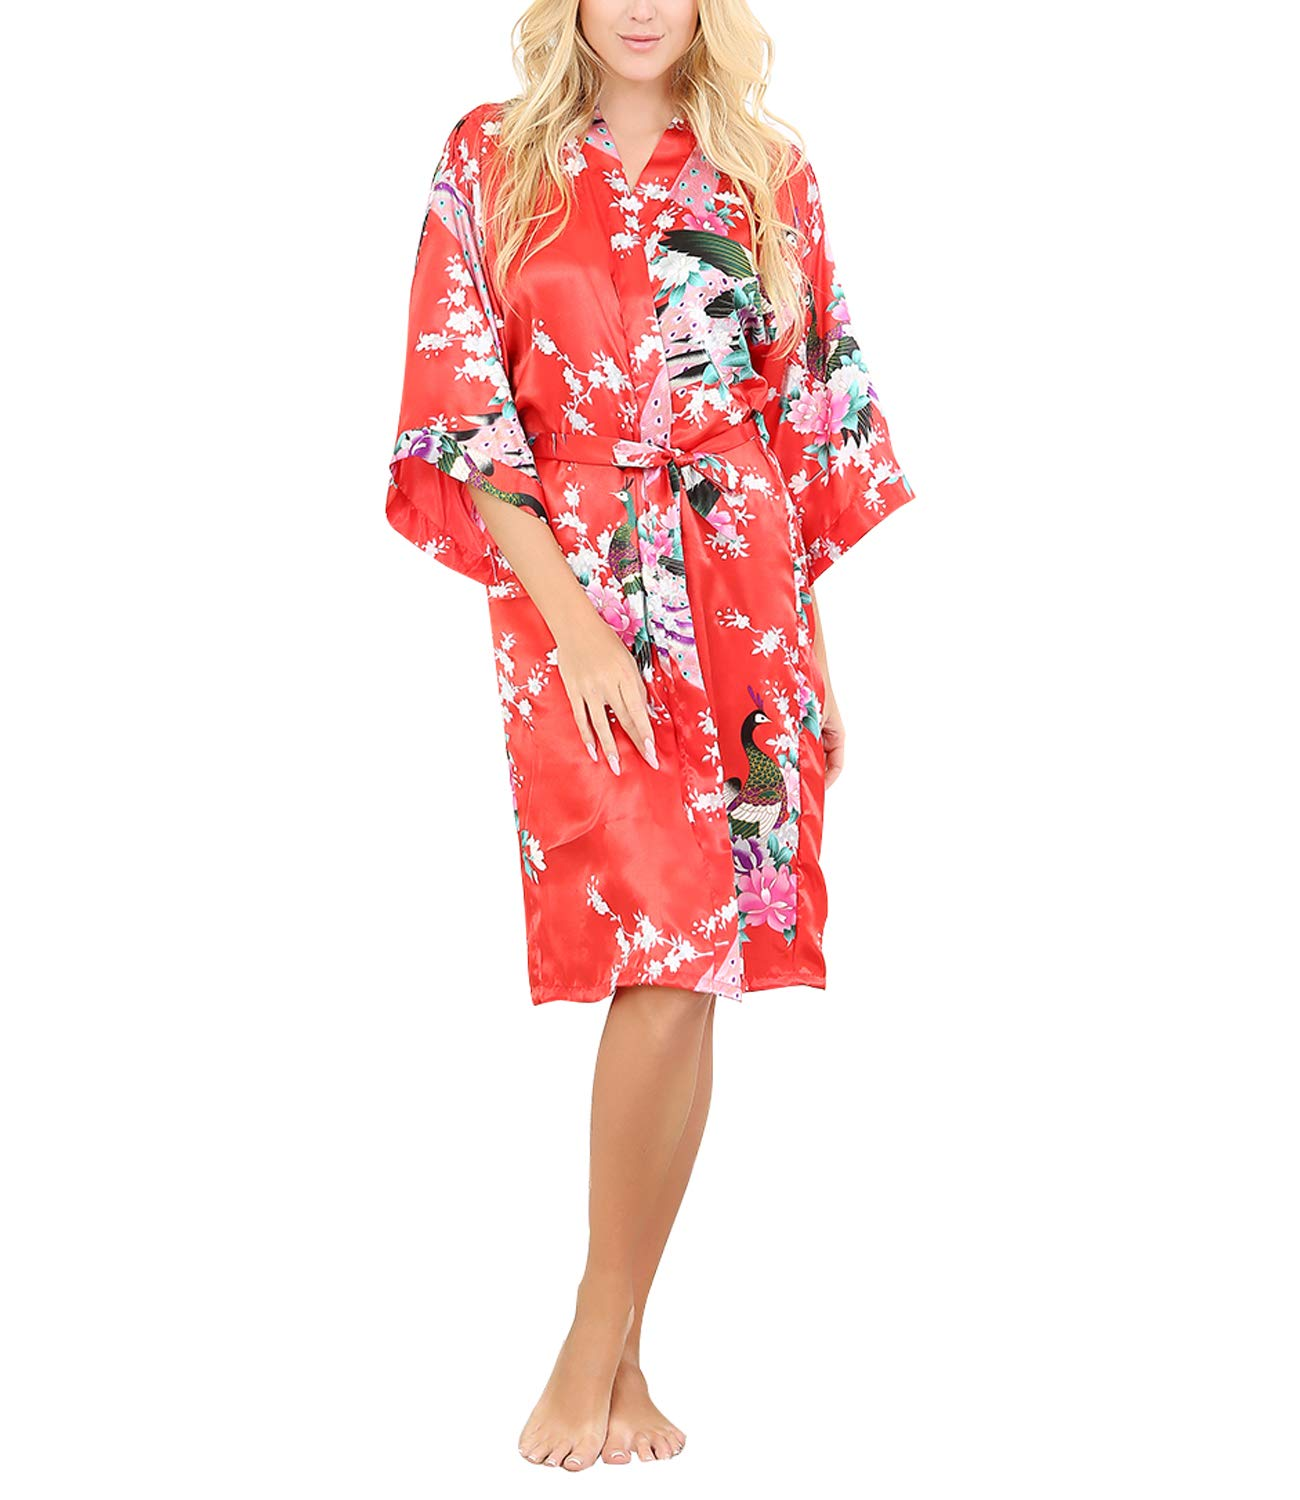 La Dearchuu Summer Dressing Gowns for Women Satin Kimono Robes for Brides Printing Peacock Ladies Nightwear Plus Size Lingerie Robe